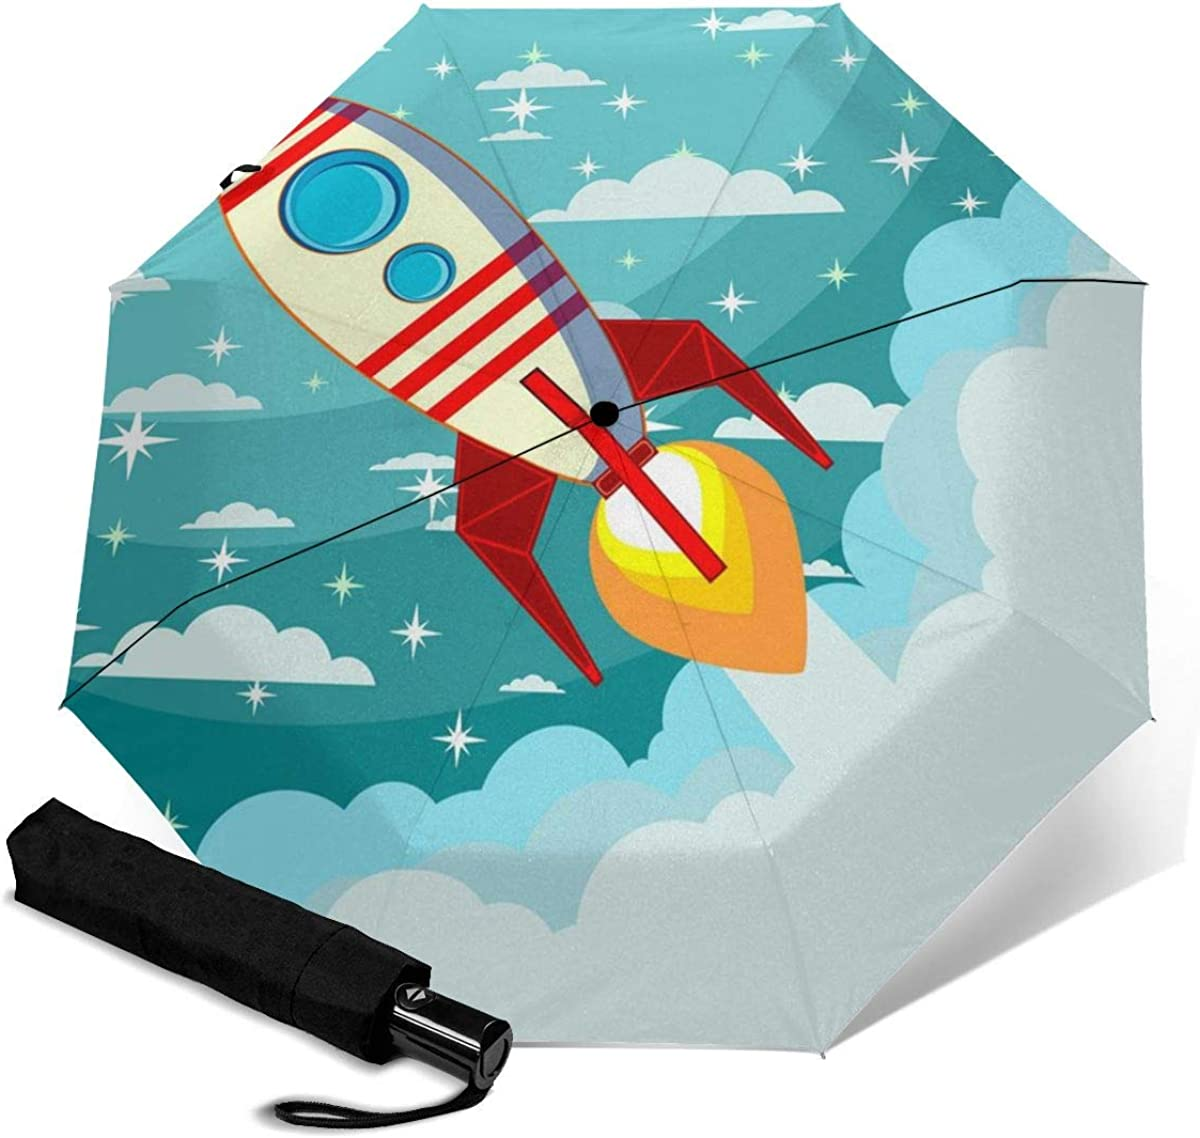 Spaceship On The Moon Background Compact Travel Umbrella Windproof Reinforced Canopy 8 Ribs Umbrella Auto Open And Close Button Customized